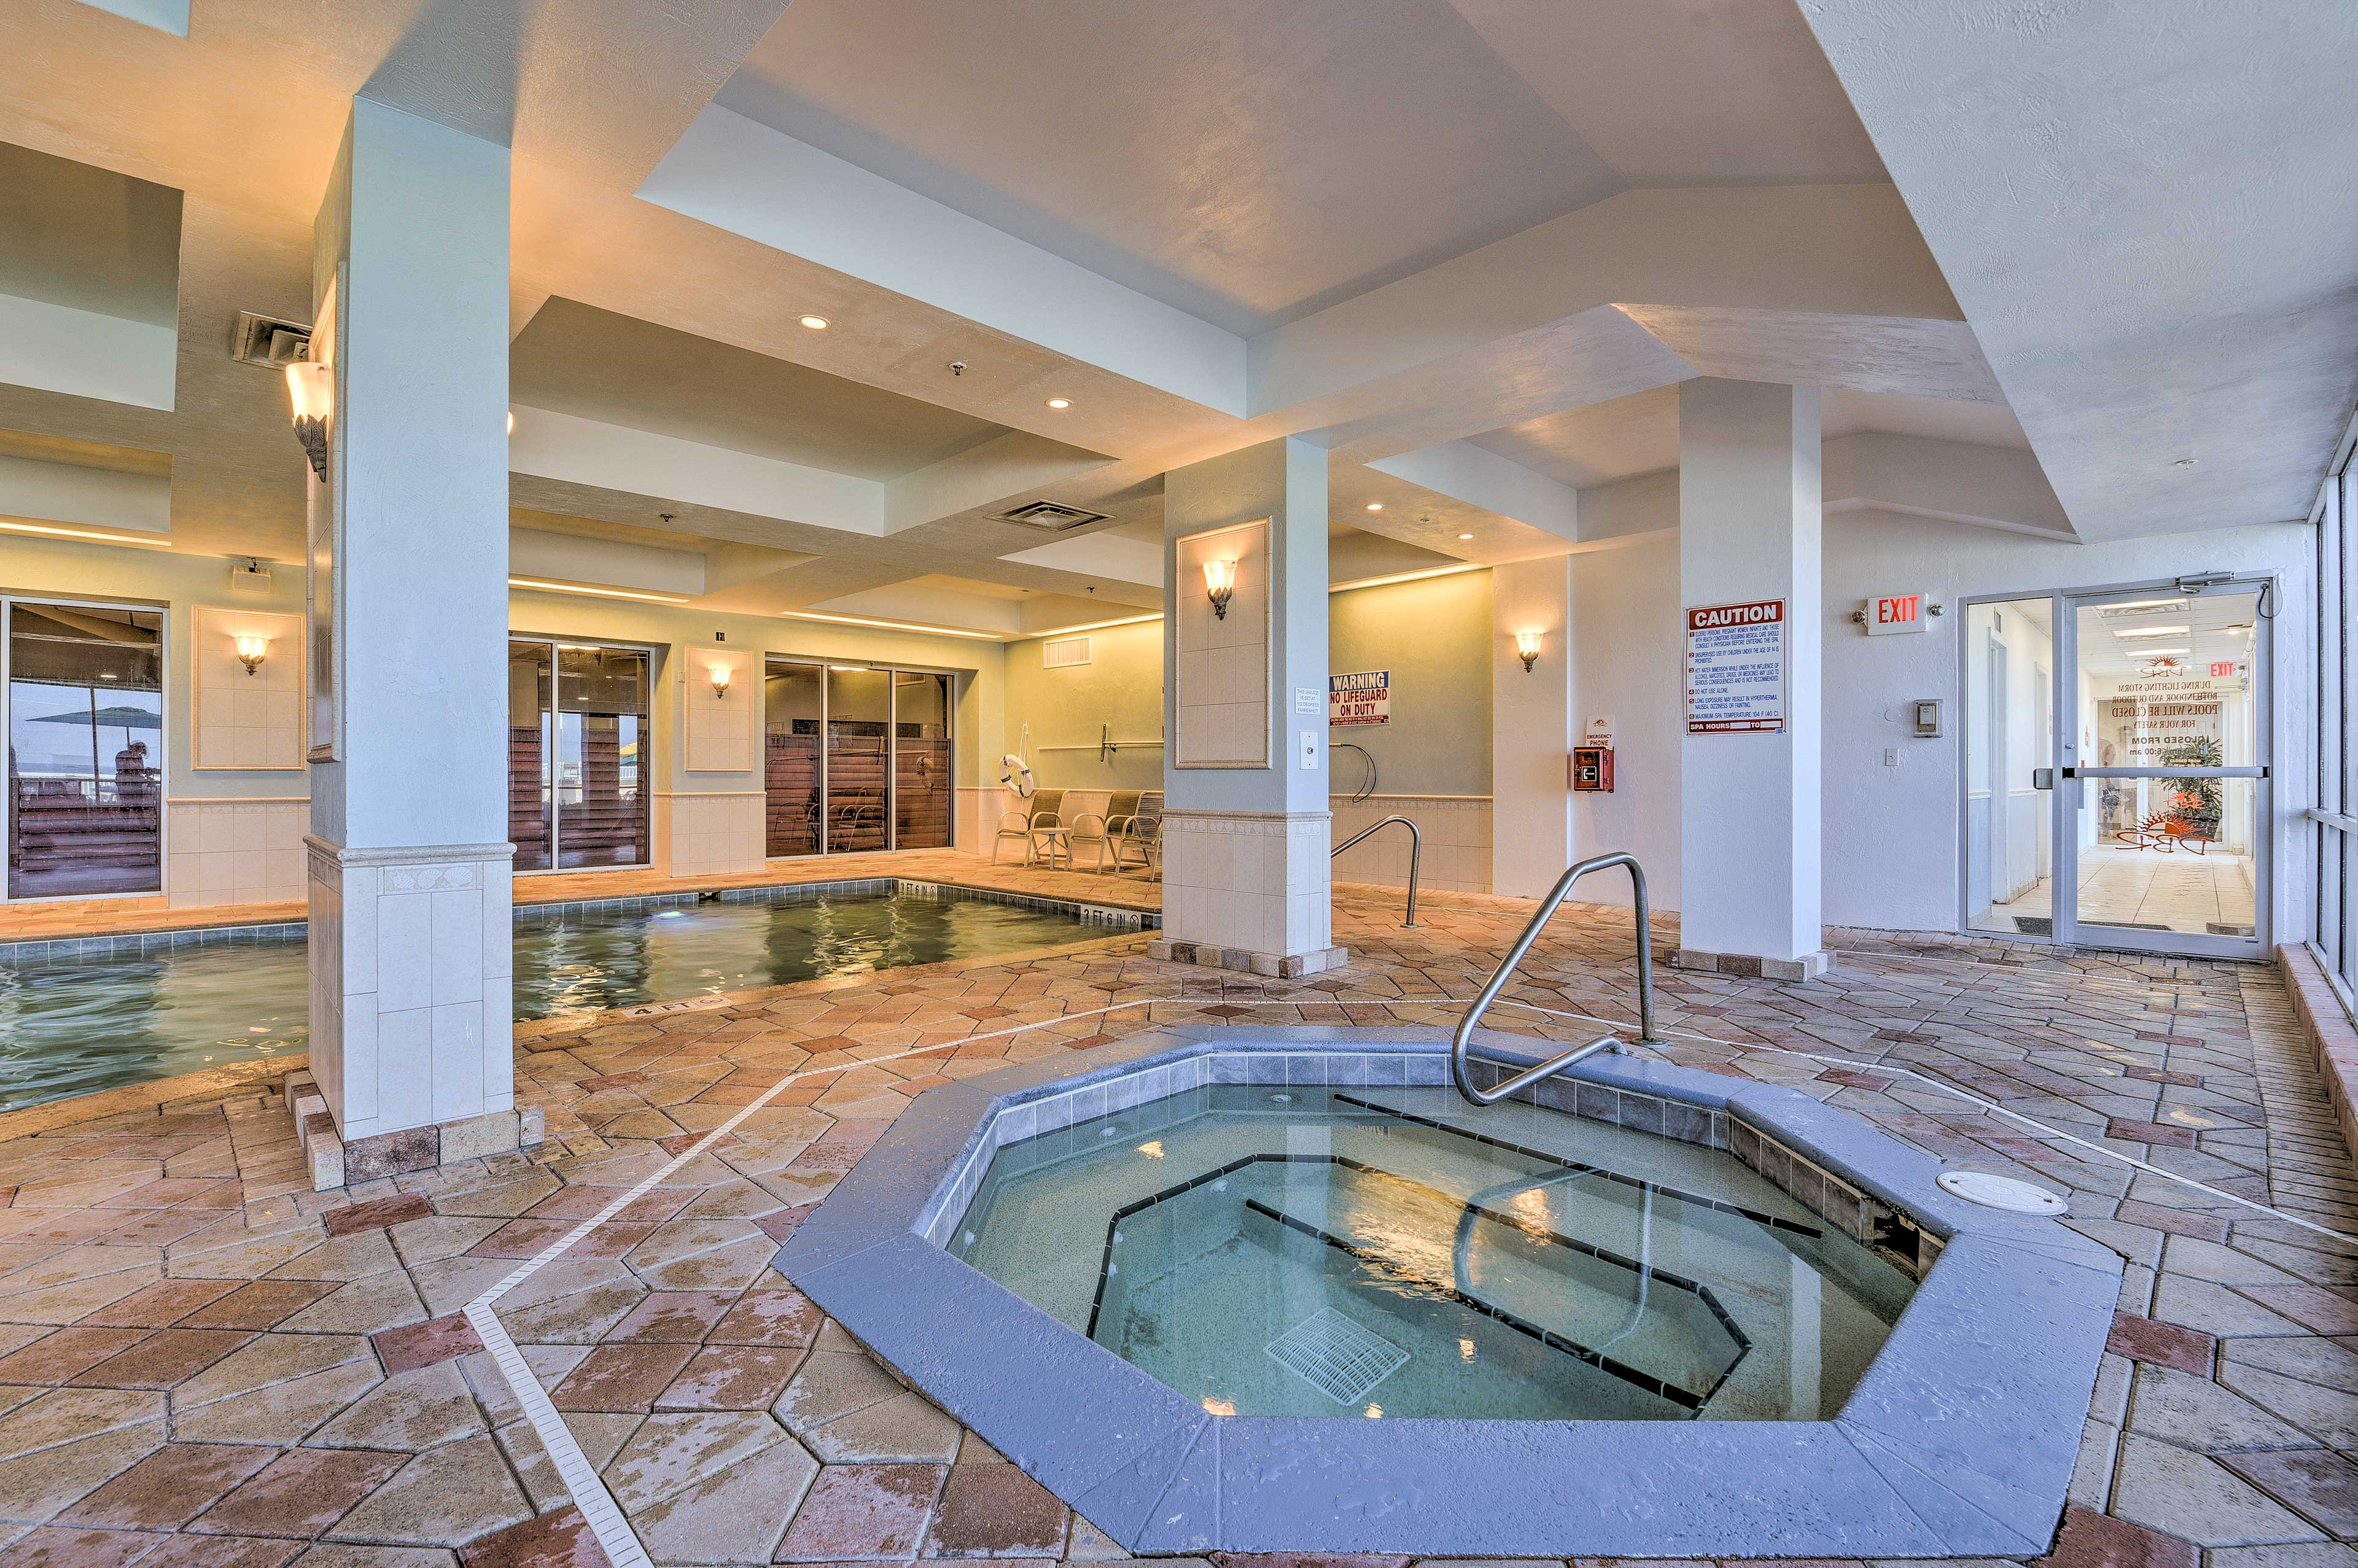 Immerse yourself in the hot tub.